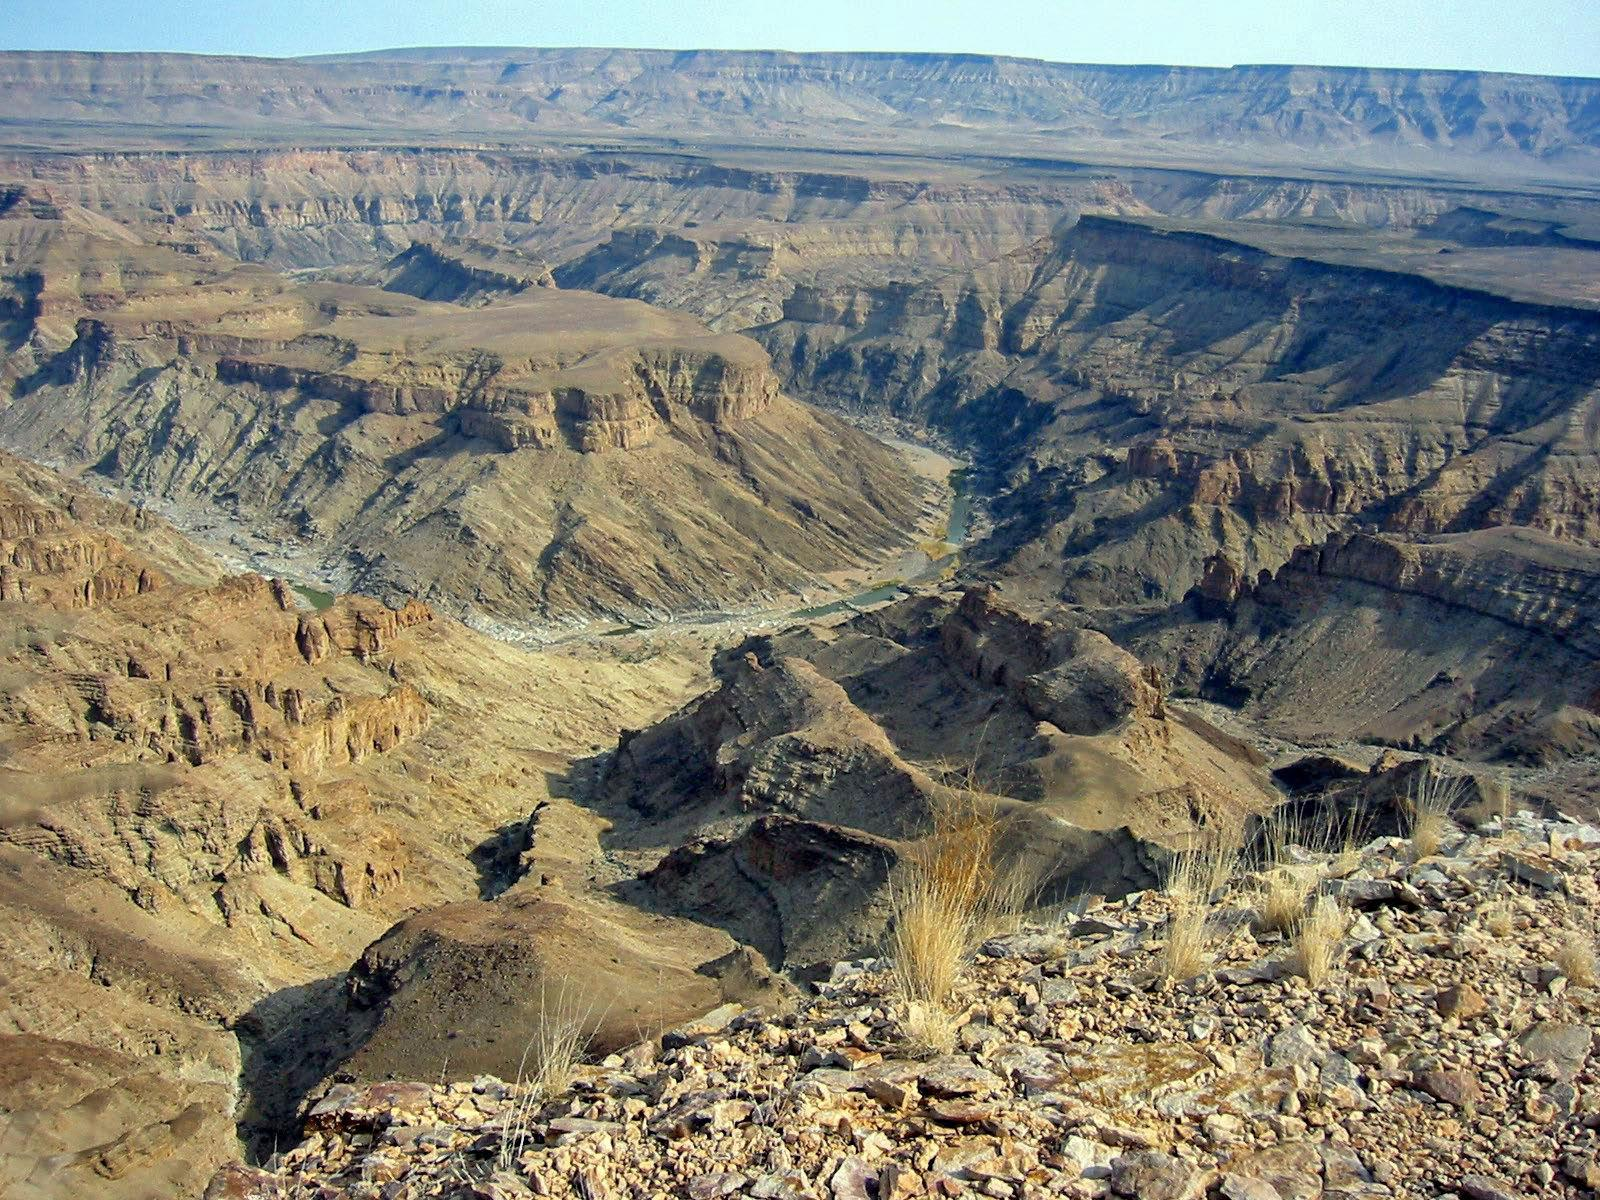 File:Fish River Canyon Namibia.jpg - Wikimedia Commons